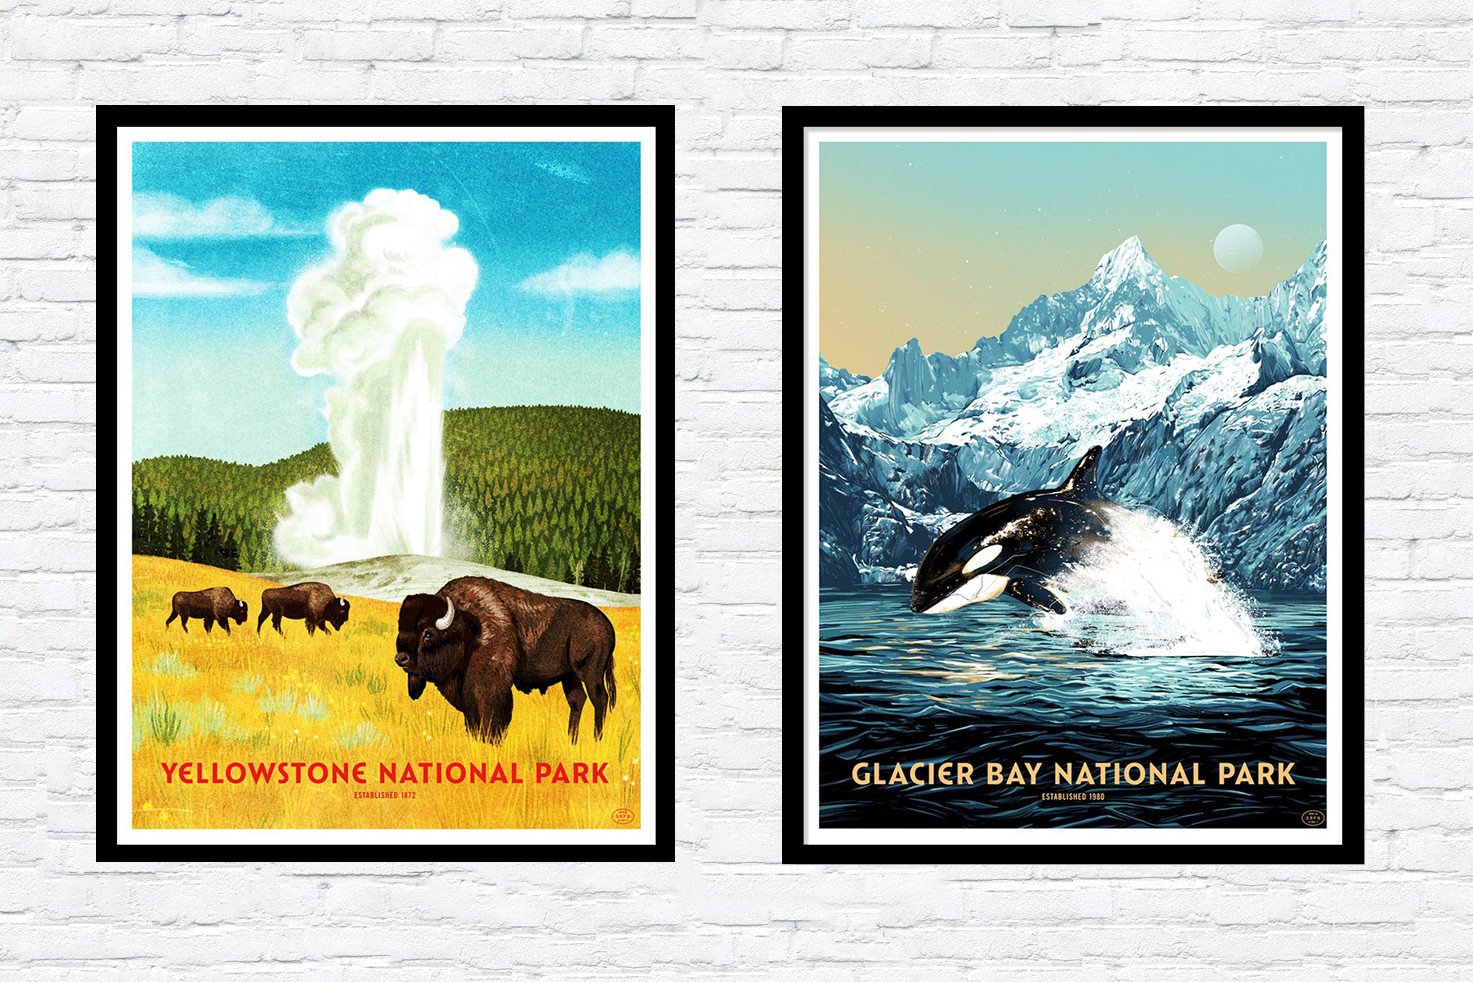 Celebrate Support National Parks With Outdoorsy Artwork Gearjunkie